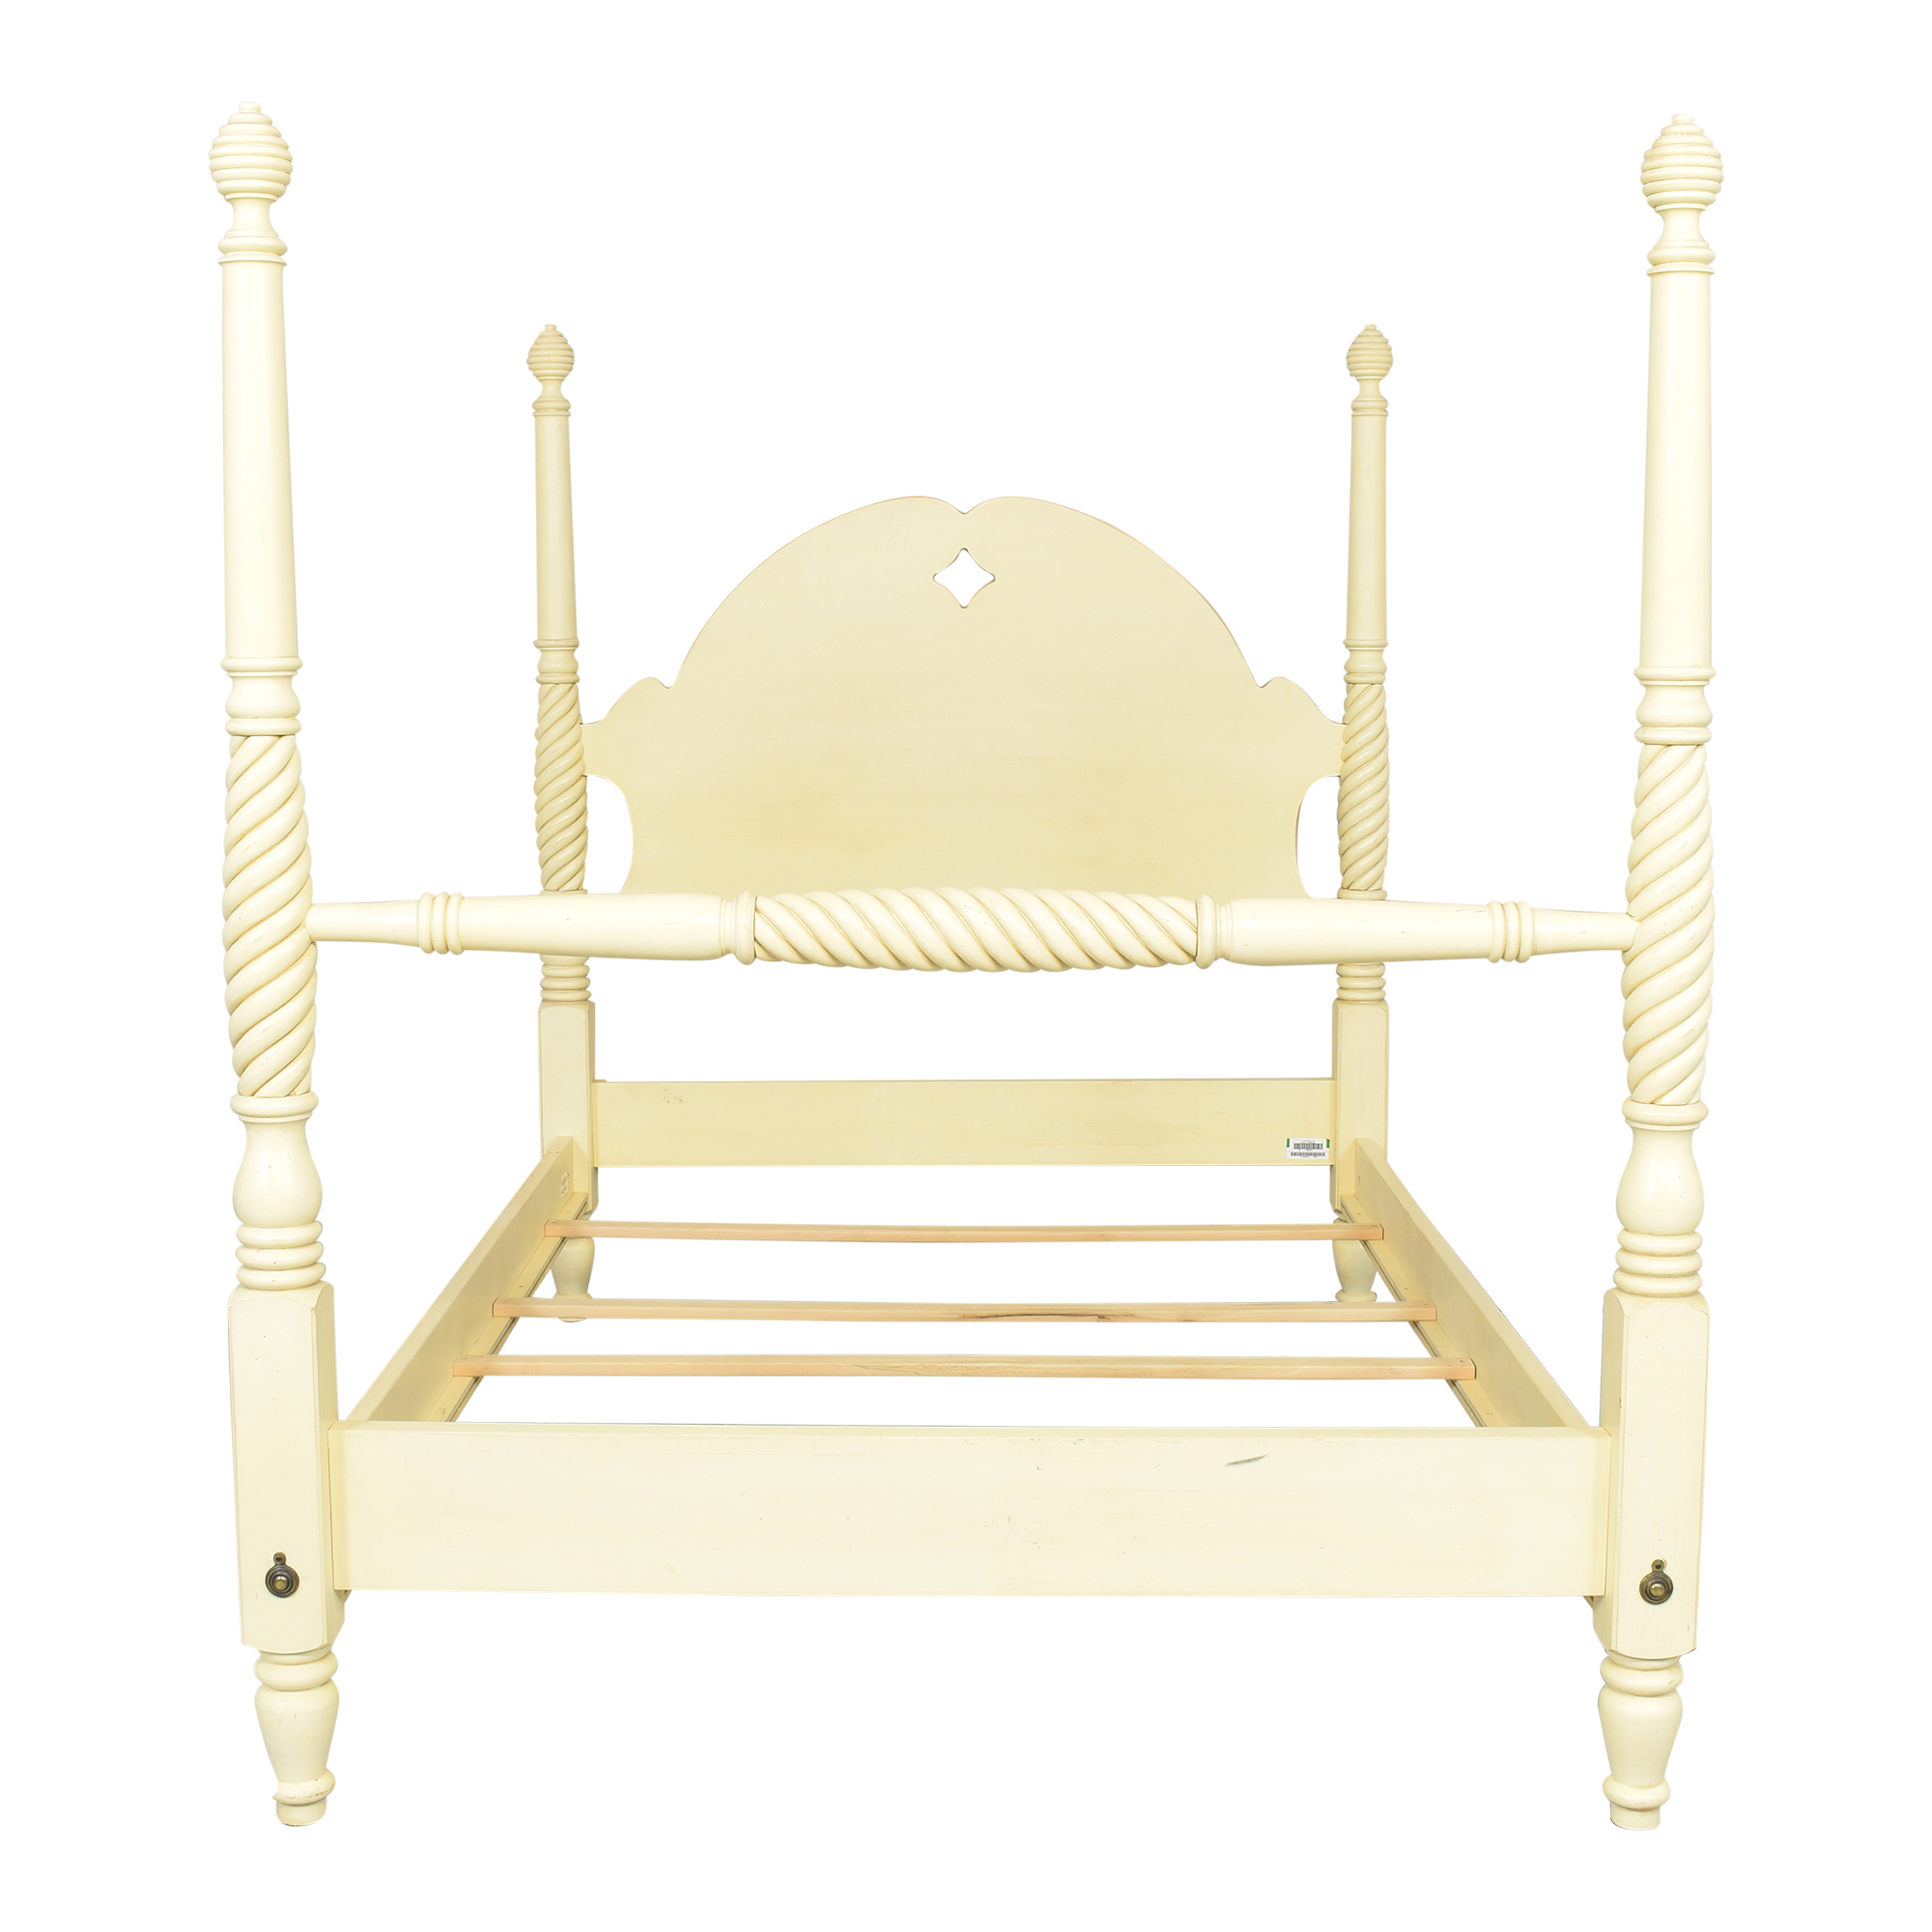 Ethan Allen Ethan Allen Country Crossings Four Poster Full Bed on sale